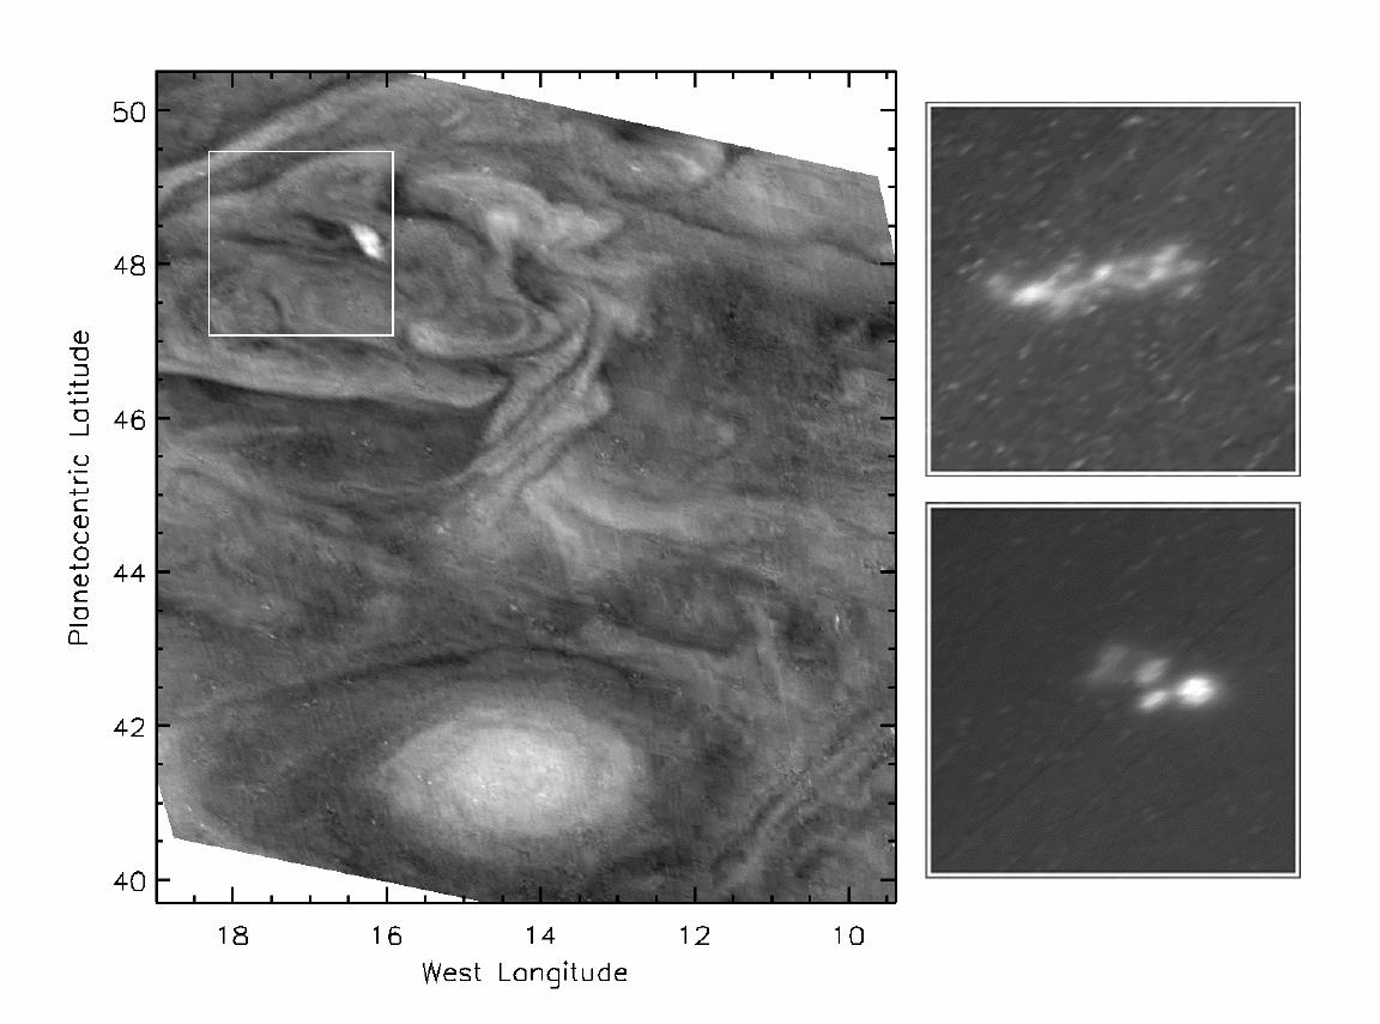 This picture highlights a convective storm (left panel) and the associated lightning (right panels) in Jupiter's atmosphere. The images were taken by the solid state imaging camera system on NASA's Galileo spacecraft at a range of 1.1 million kilometers.